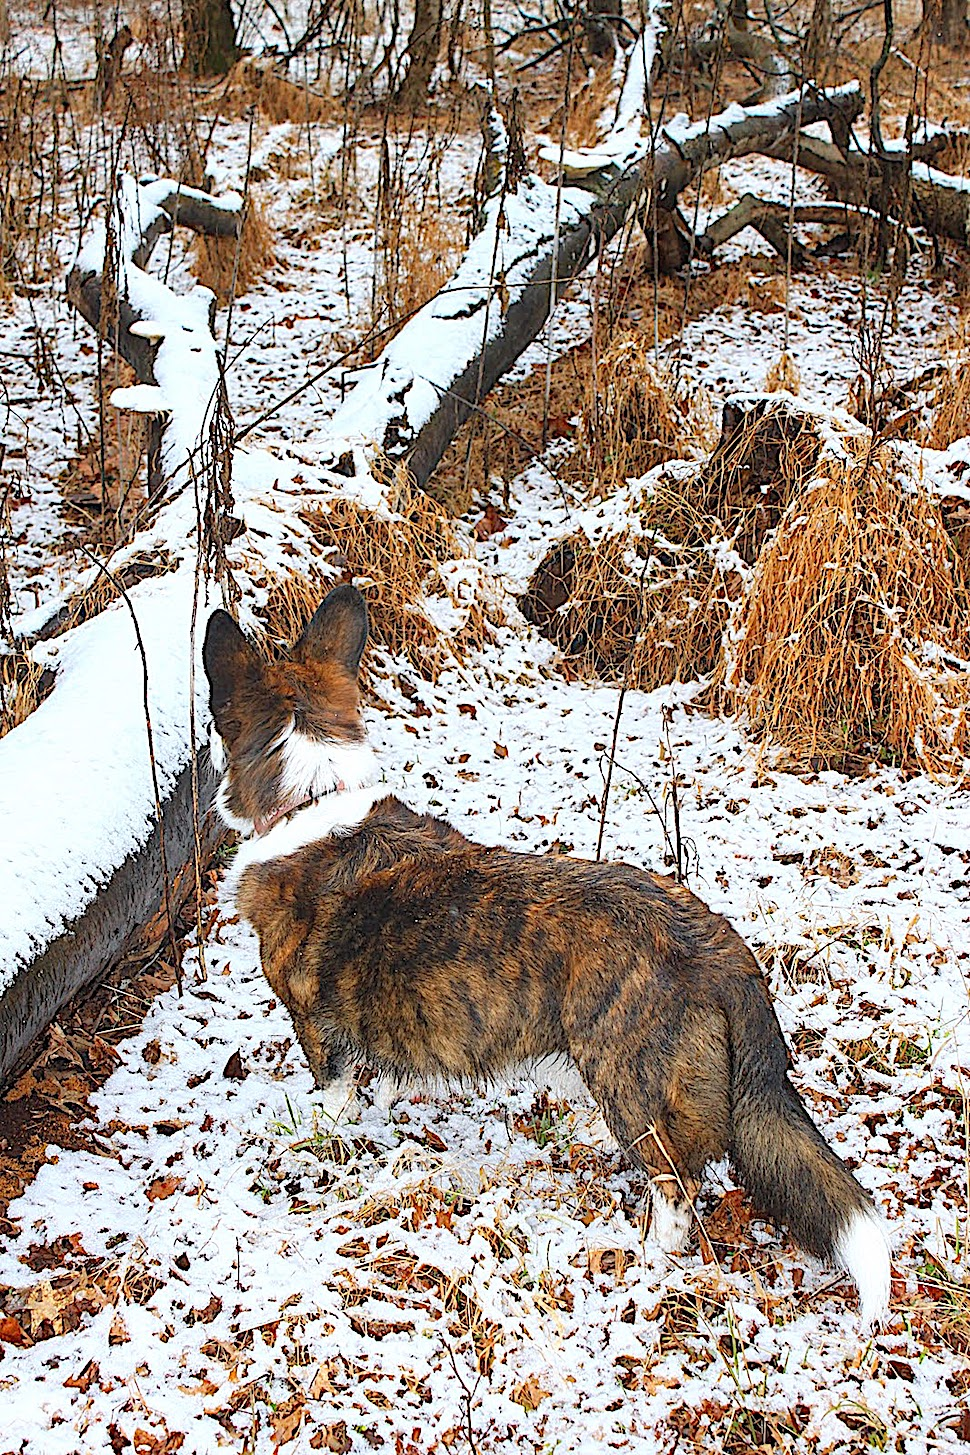 a painting by Bev Doolittle of a dog in winter